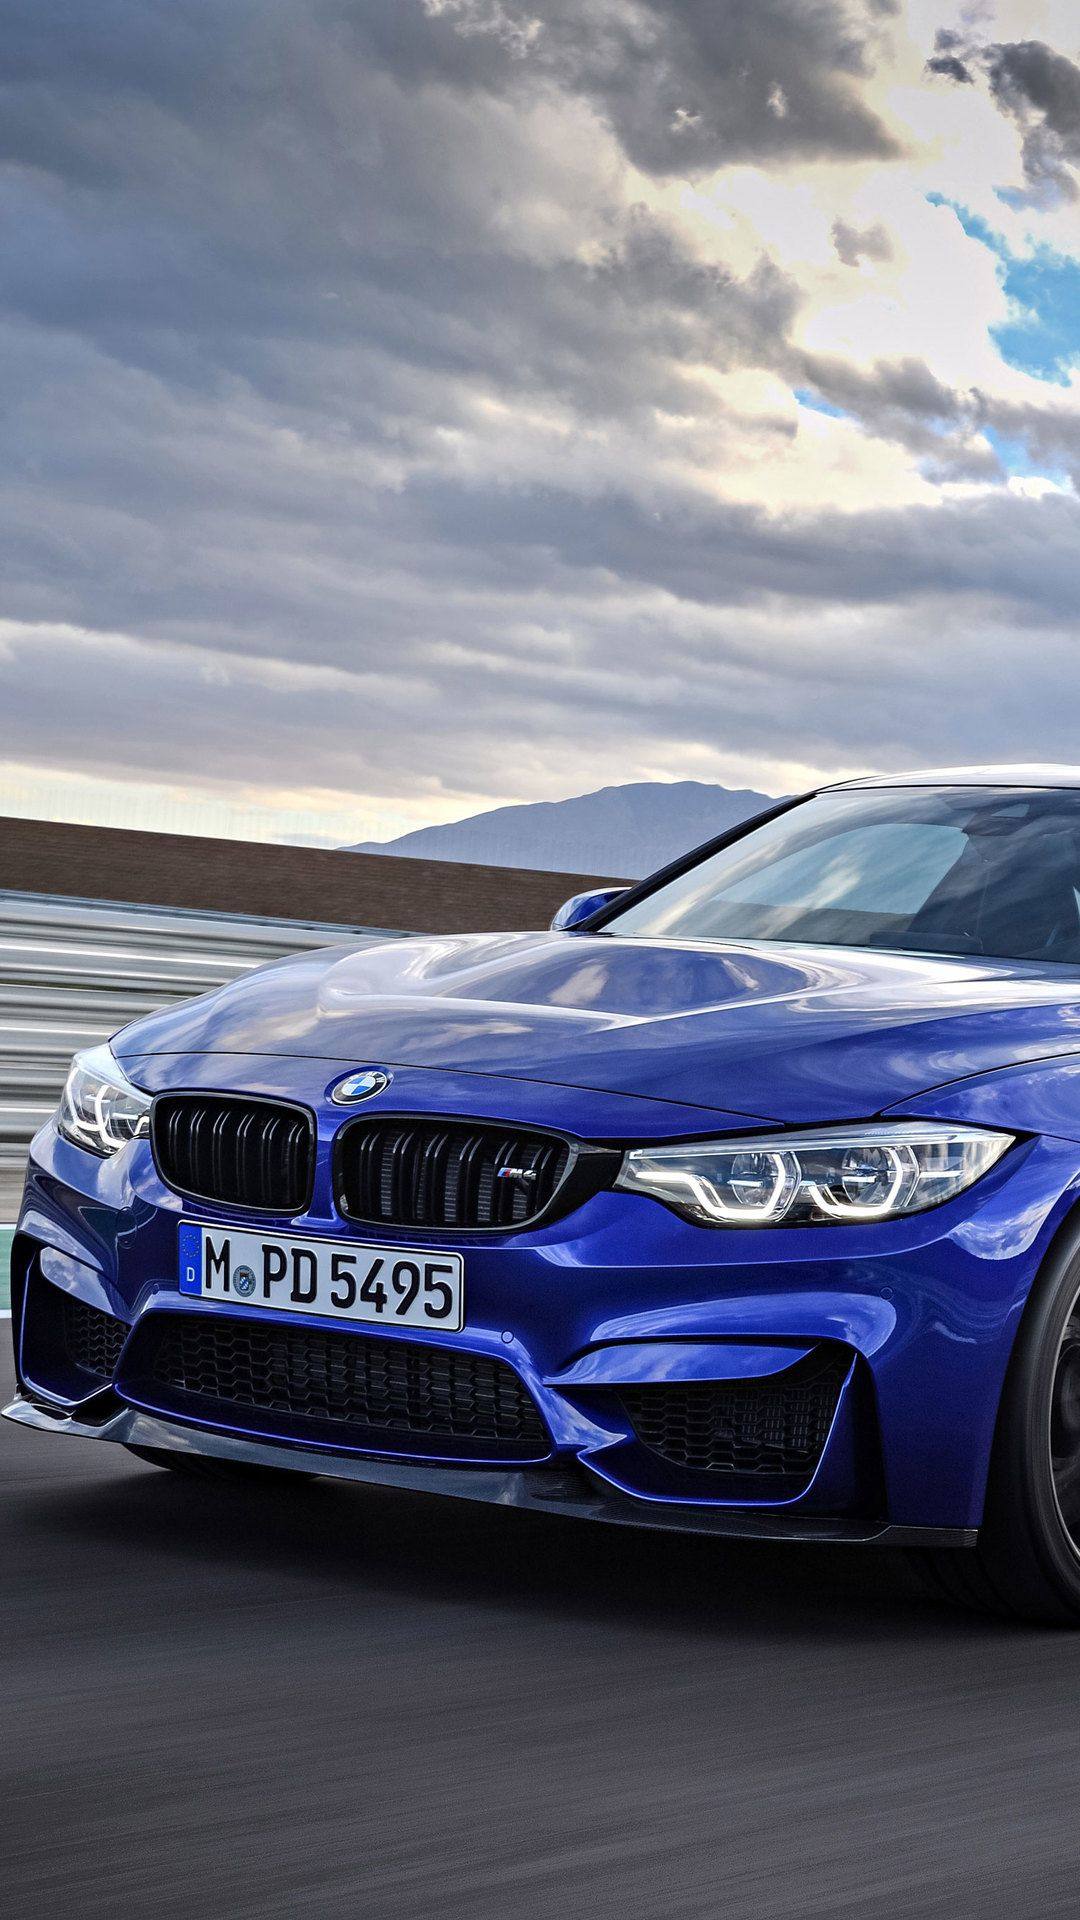 Bmw M4 Wallpapers Full Hd Hupages Download Iphone Wallpapers 1080x1920